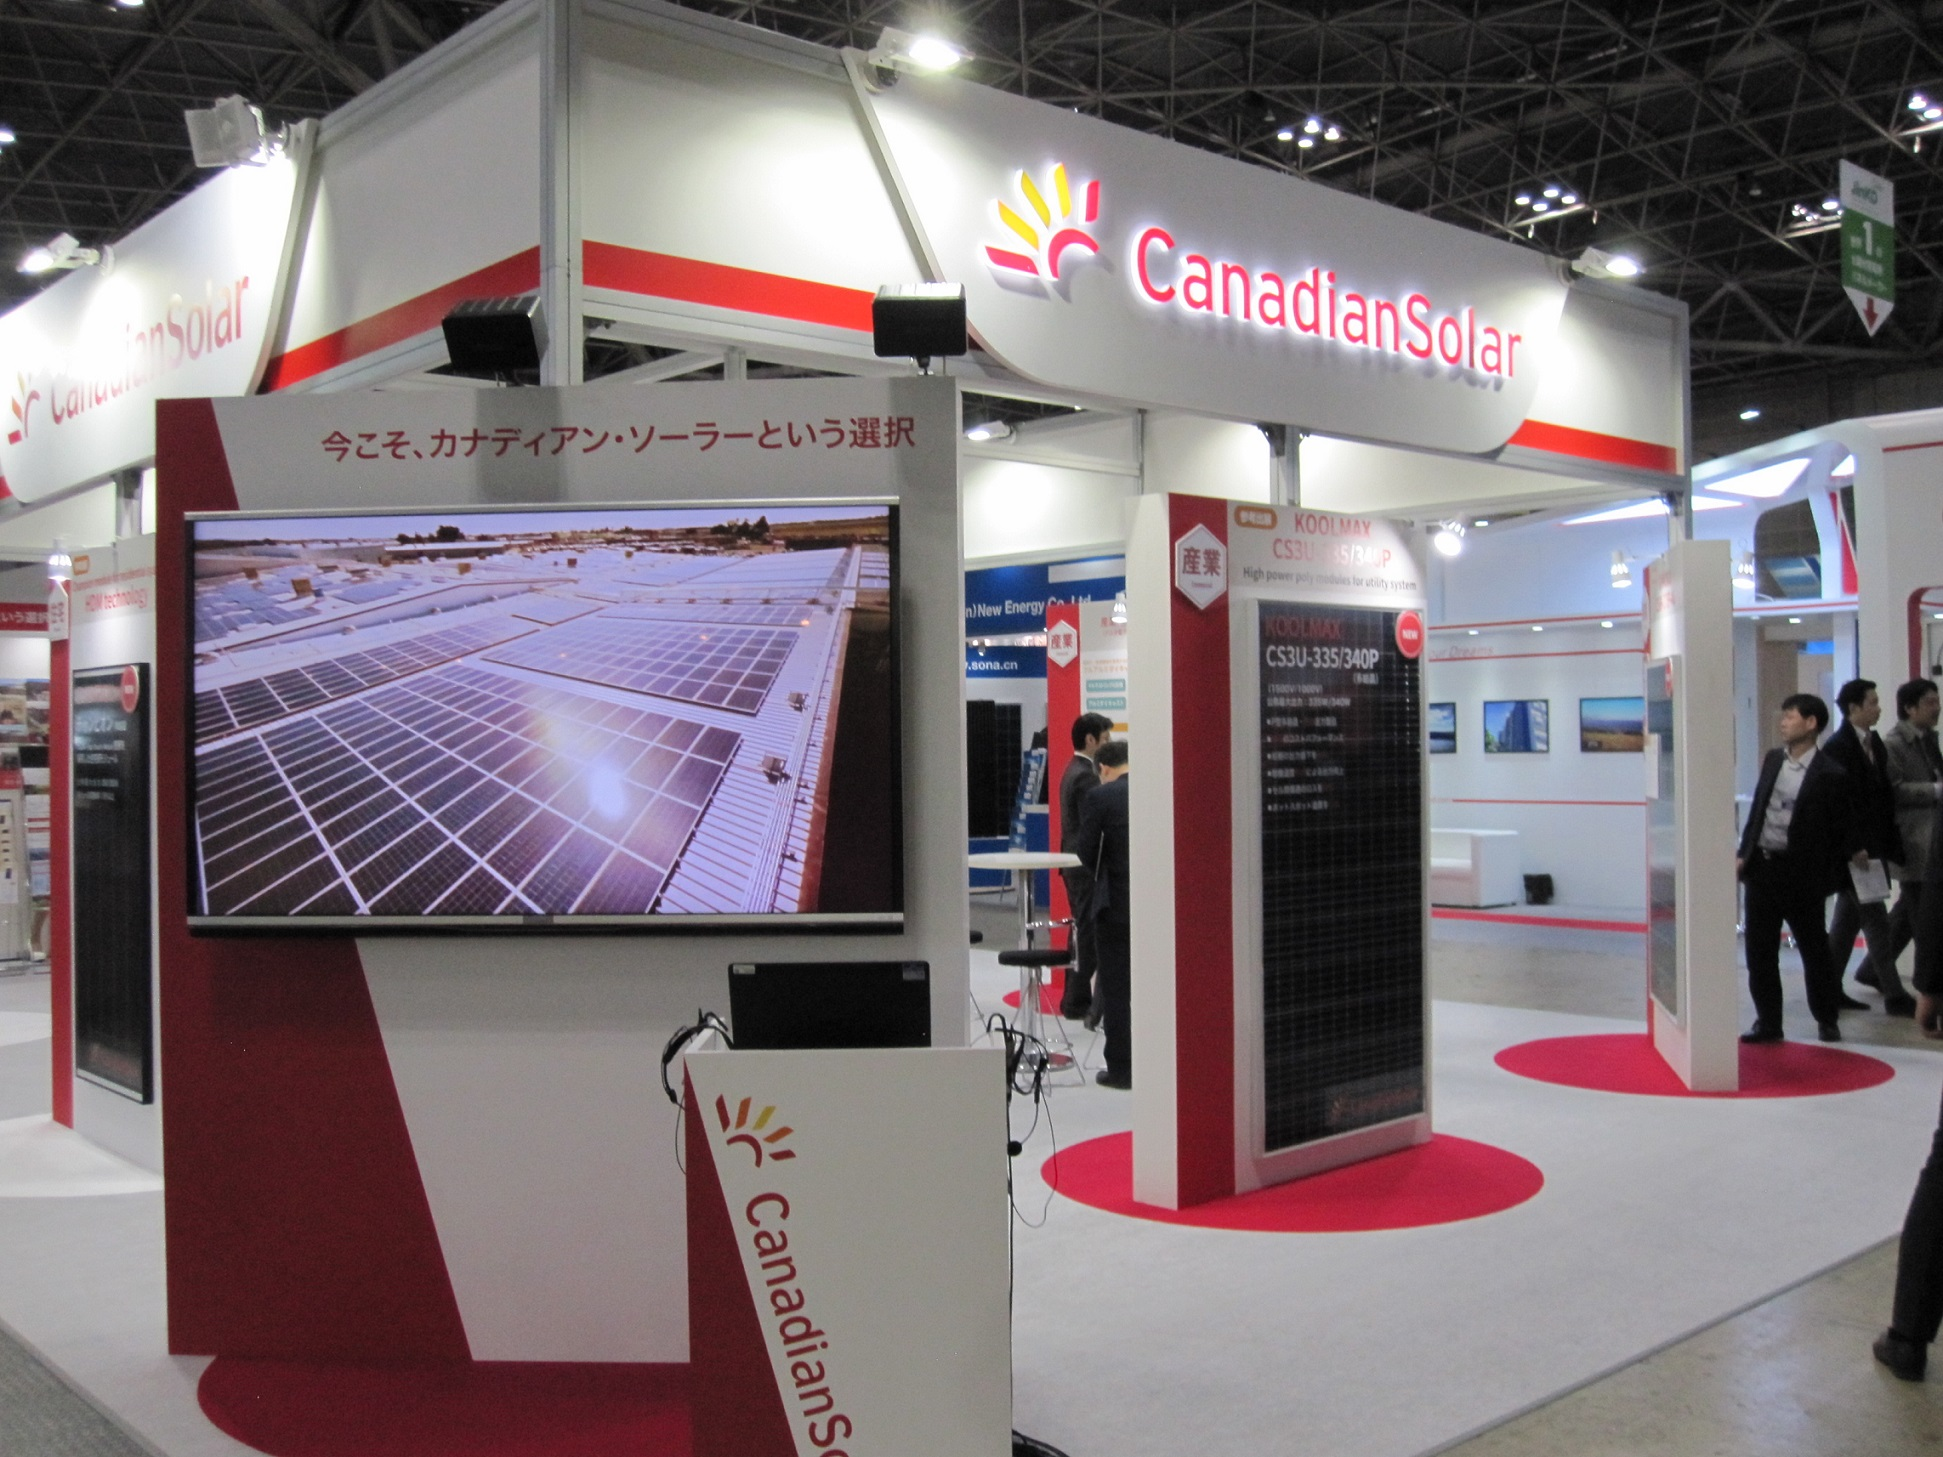 Canadian Solar's stand at PV Expo, Tokyo. The company was showcasing its vertically integrated strengths from high-efficiency modules to EPC services and everything inbetween including residential energy storage solutions. Image: Andy Colthorpe.